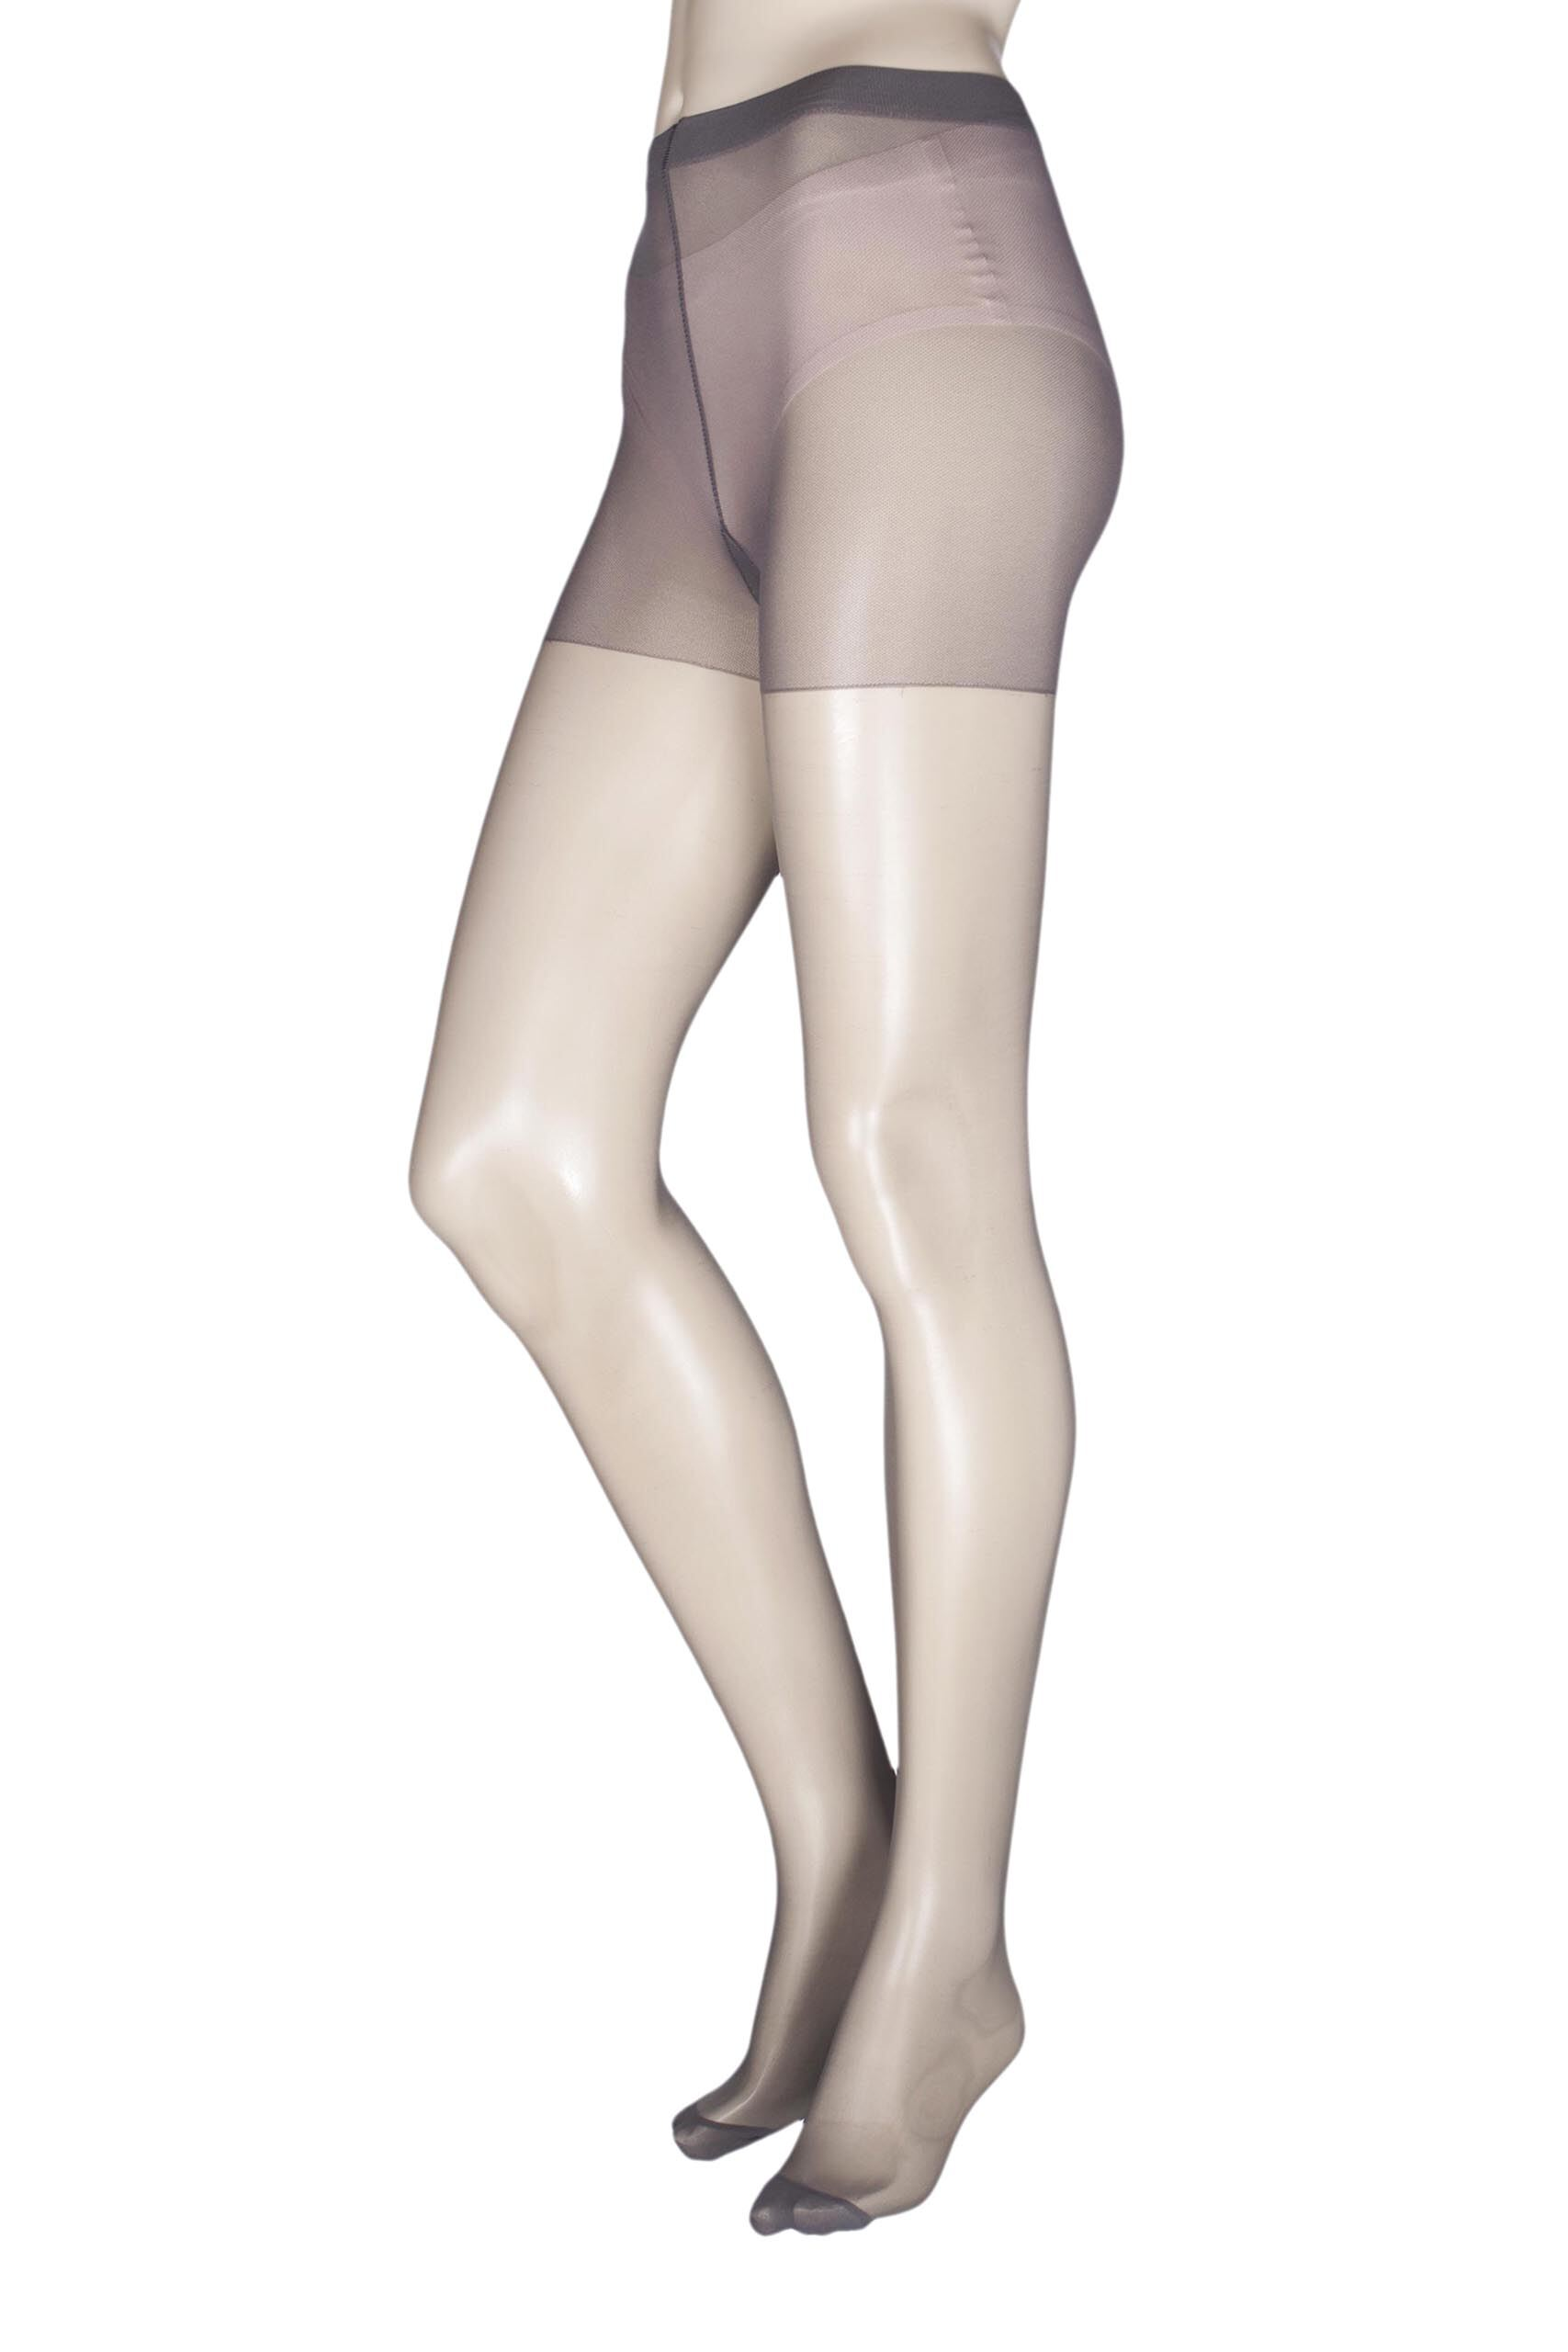 Image of 1 Pair Anthracite Class Tights Ladies Tall - Levante